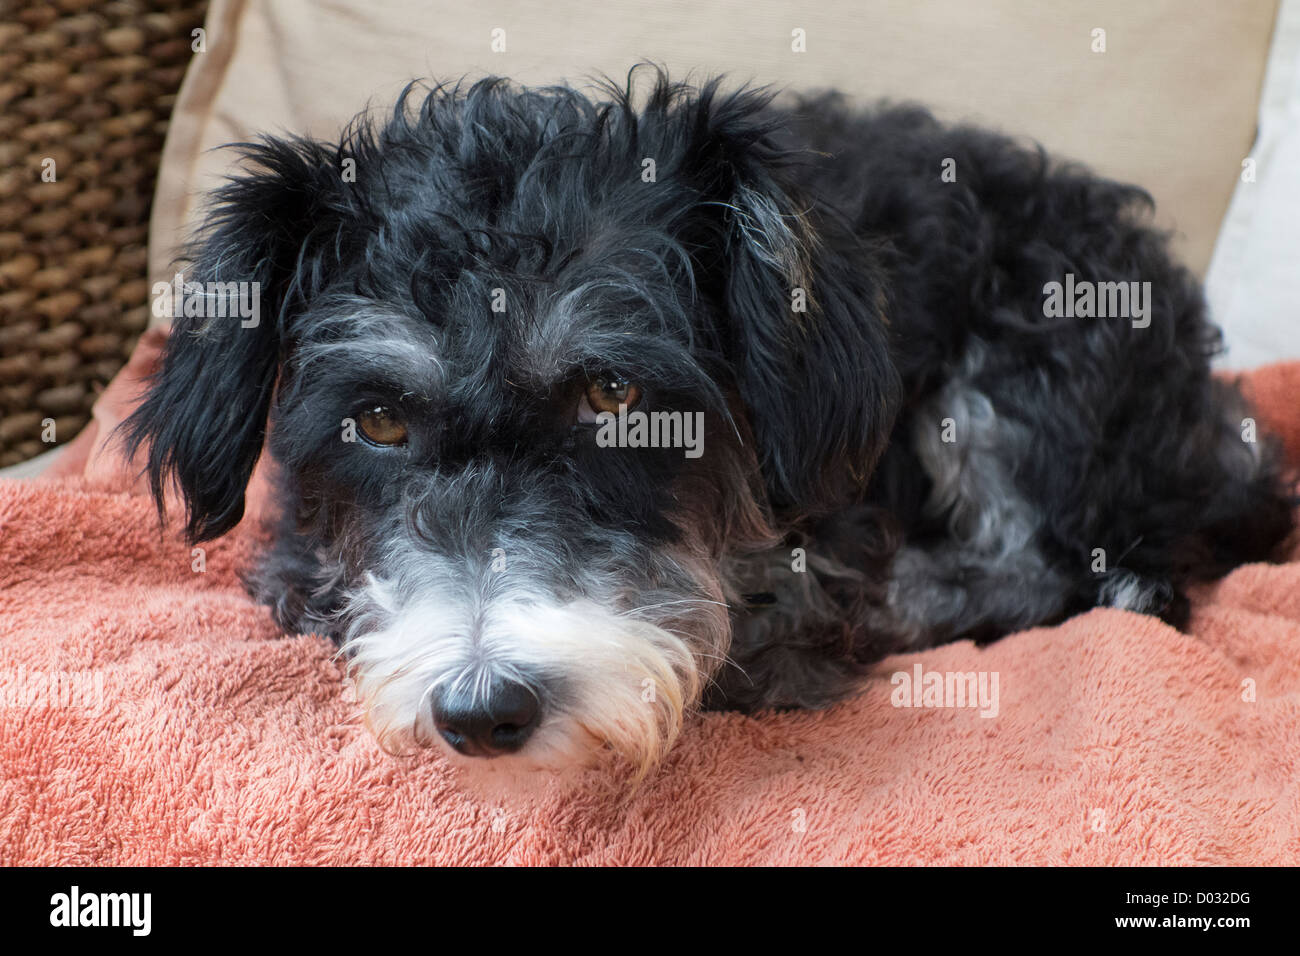 A mongrel mutt of a dog - Stock Image